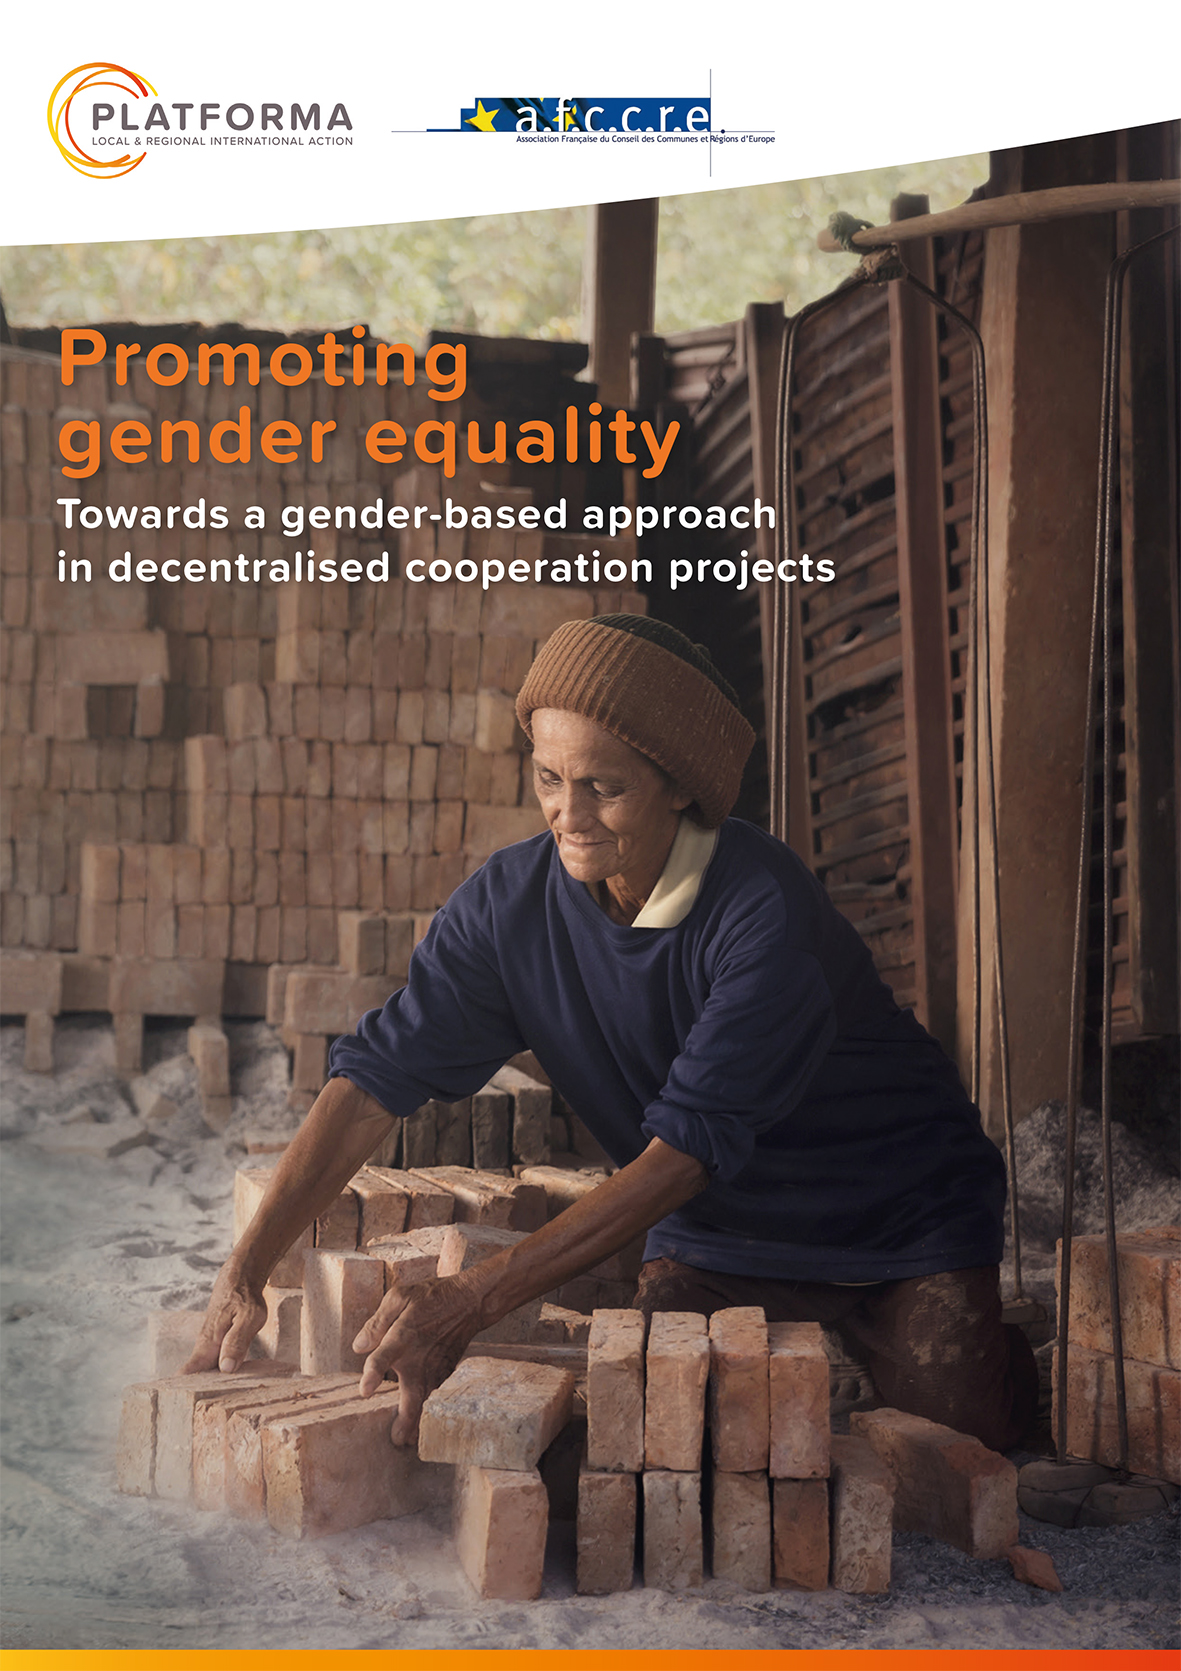 Promoting gender equality: towards a gender-based approach in decentralised cooperation projects